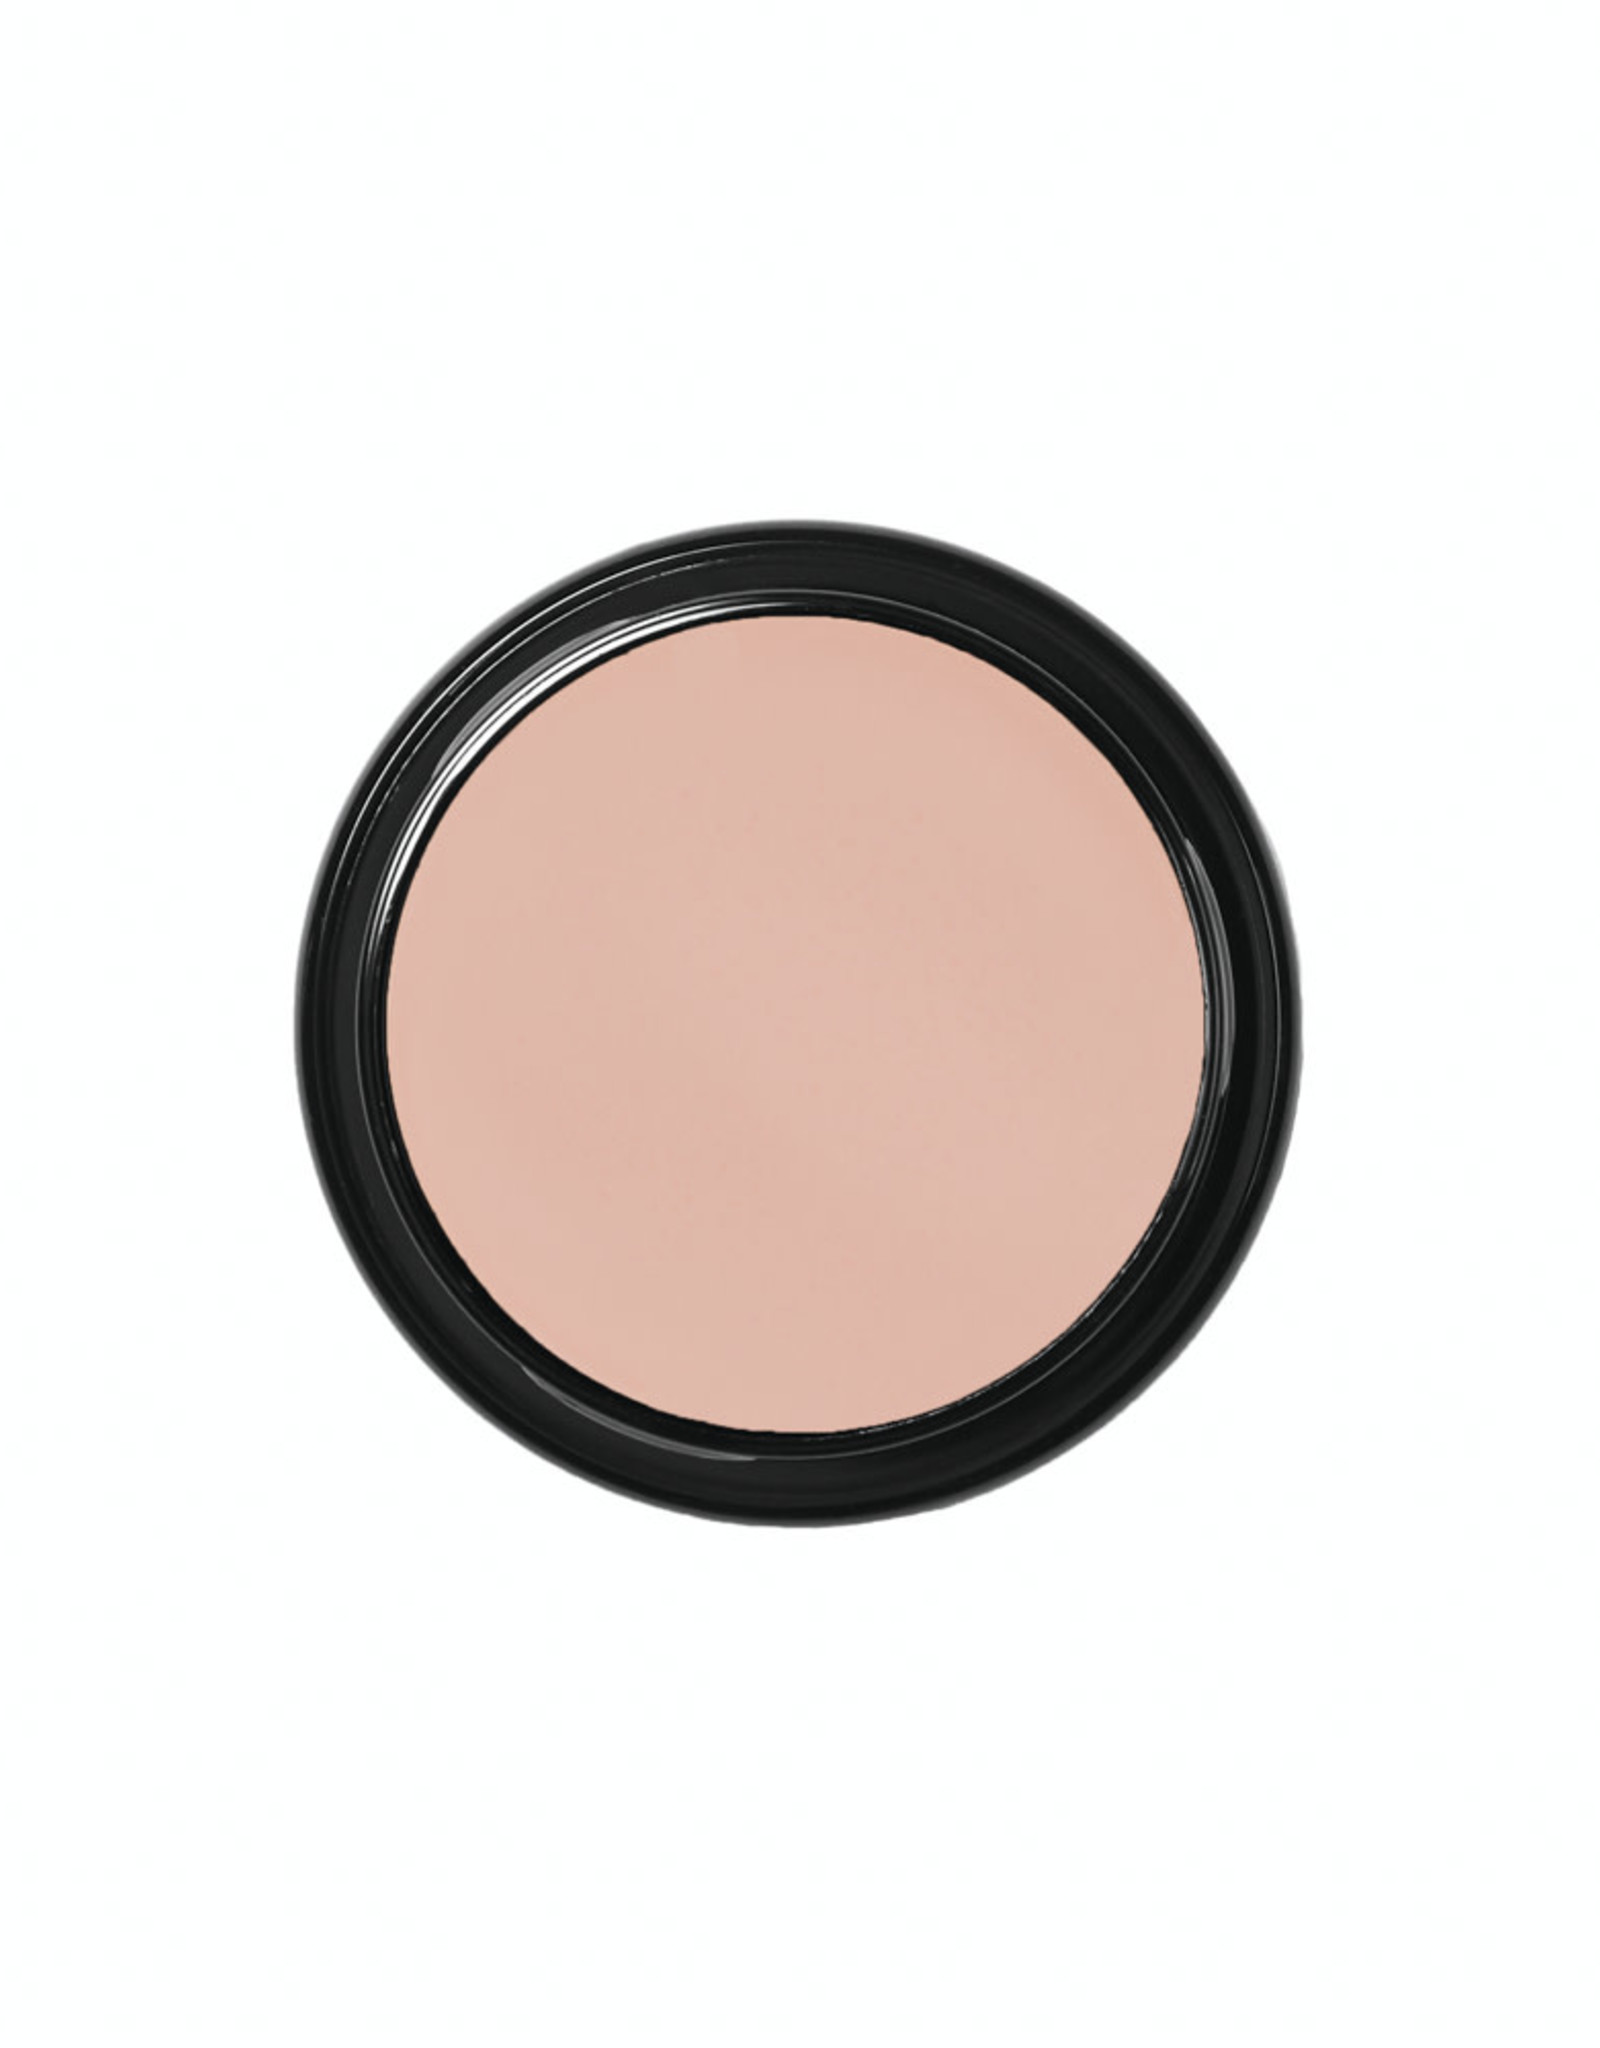 Ben Nye HIGHLIGHT-CREME, EXTRA LITE, .25 OZ